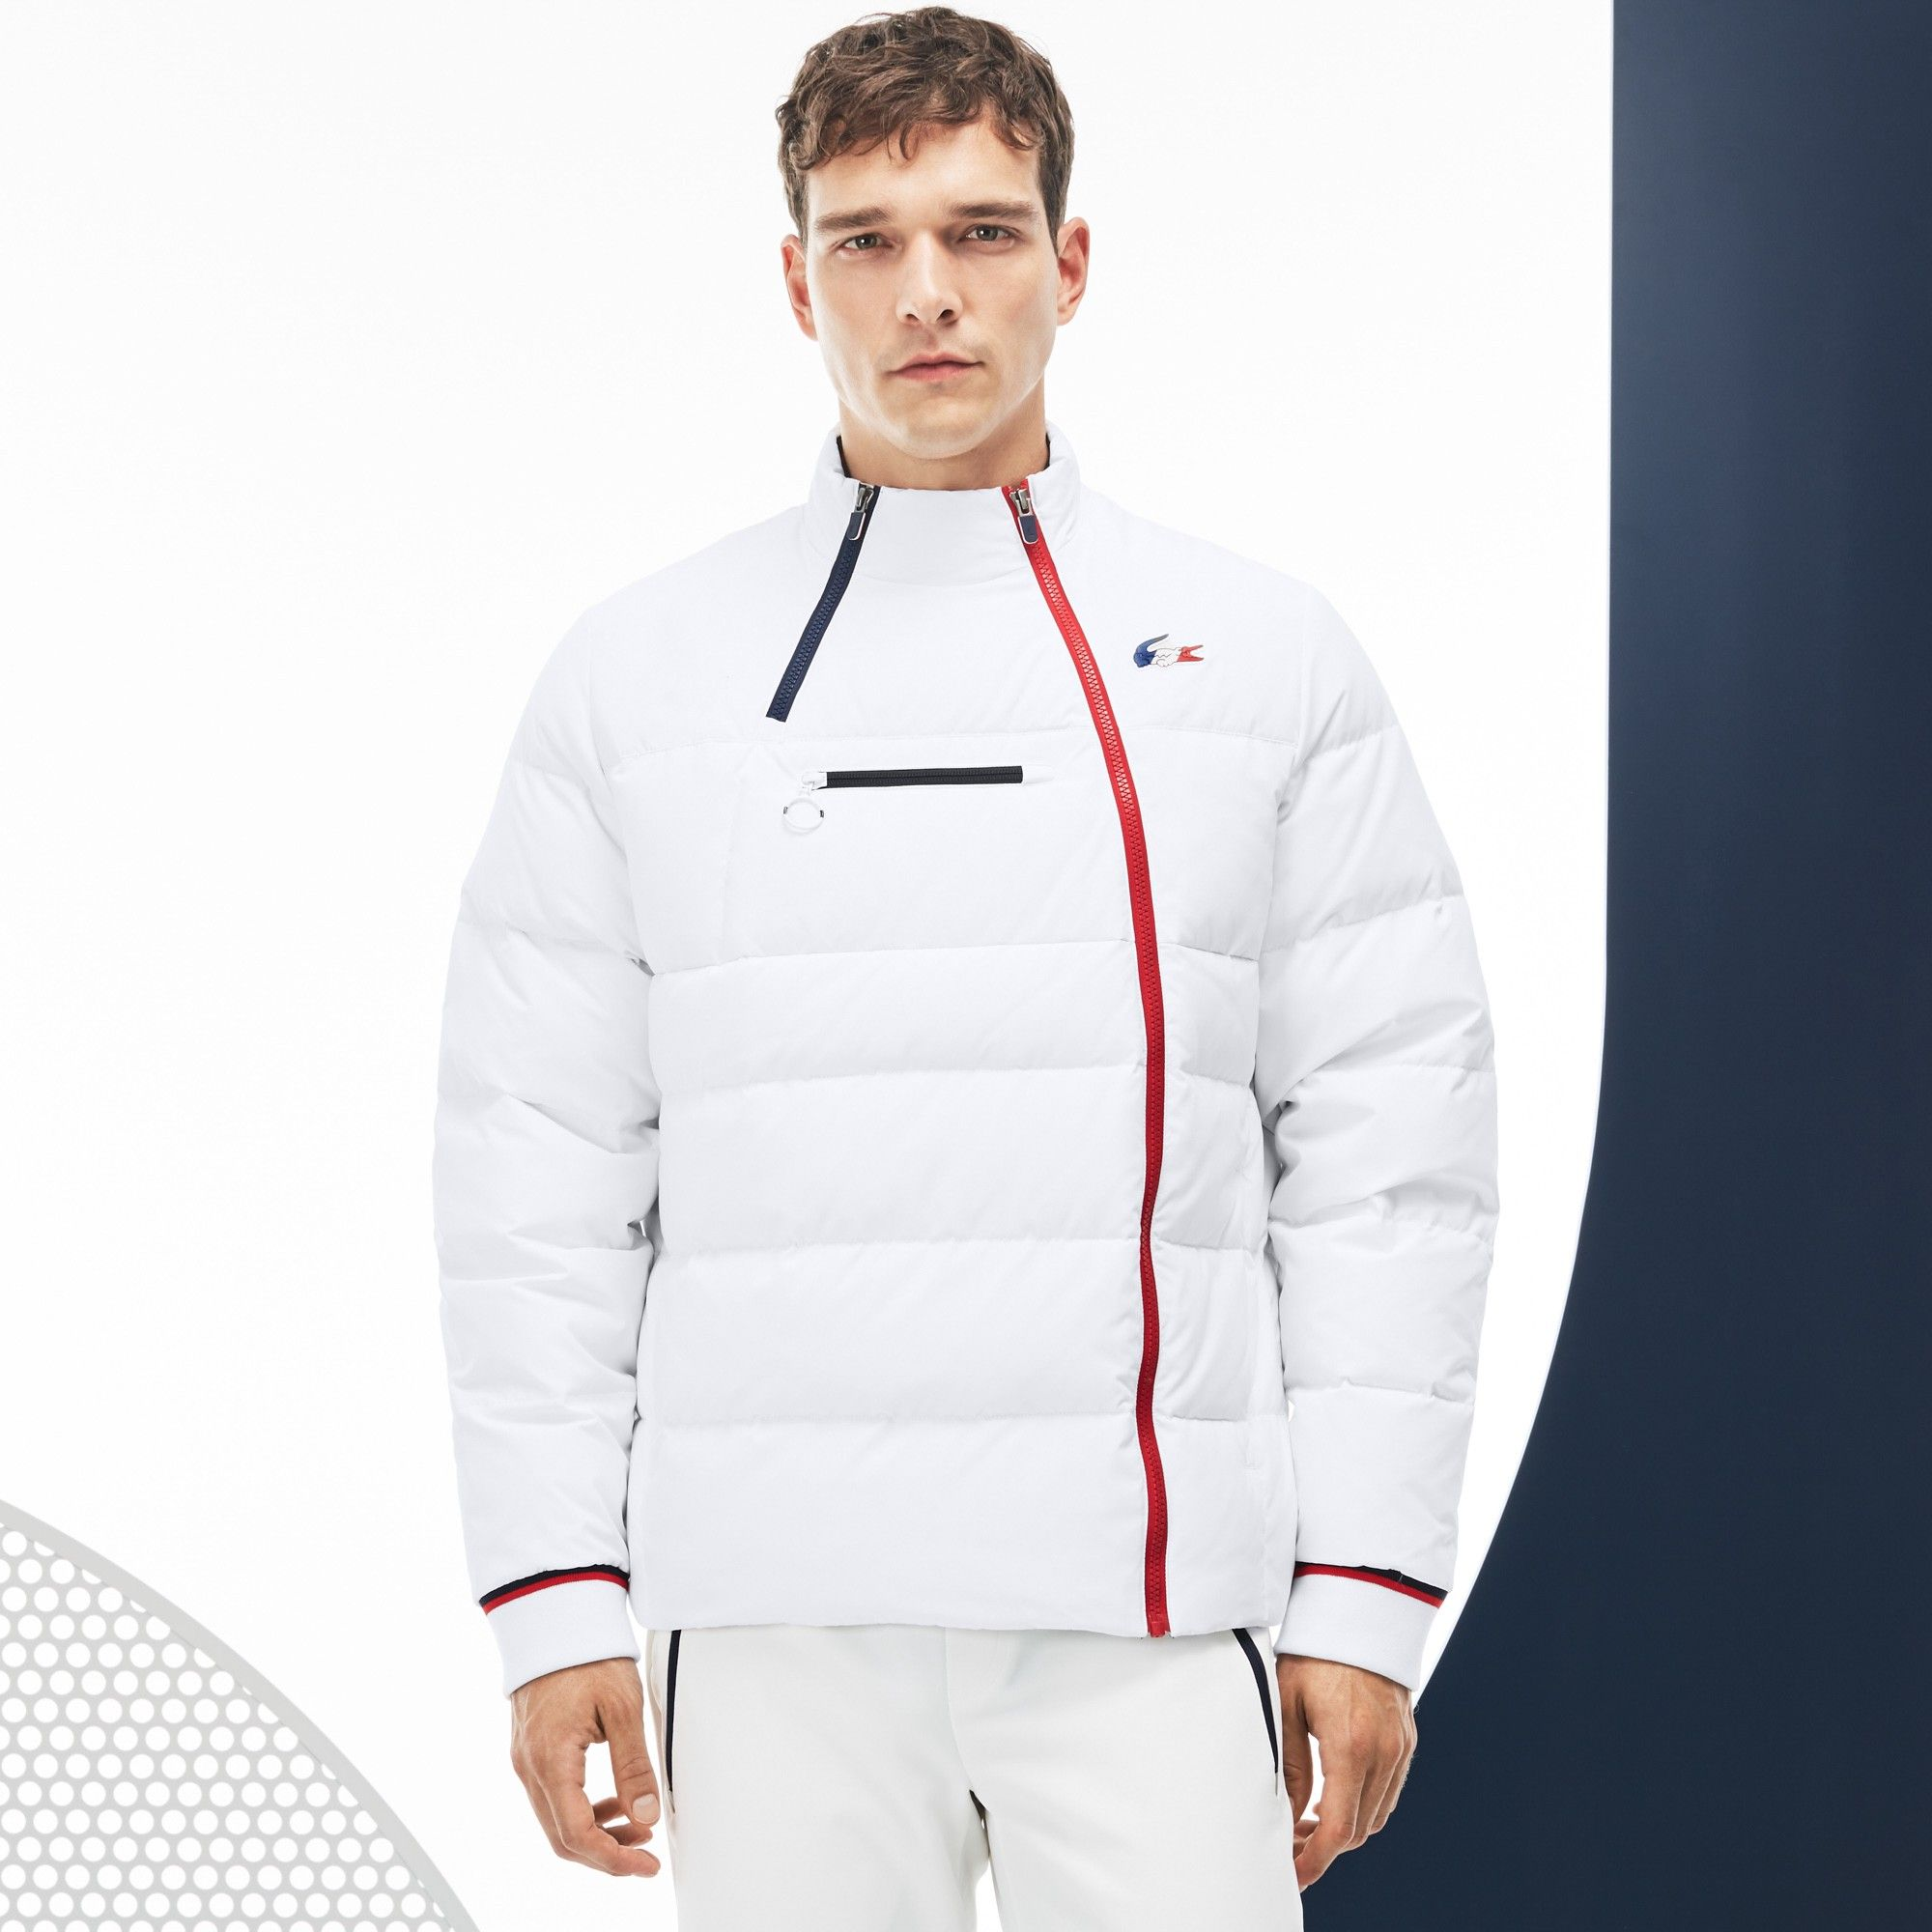 641eb96dc0201 Lacoste Men s French Sporting Spirit Edition Elasticized Panel Quilted  Jacket - White Navy Blue-Red L